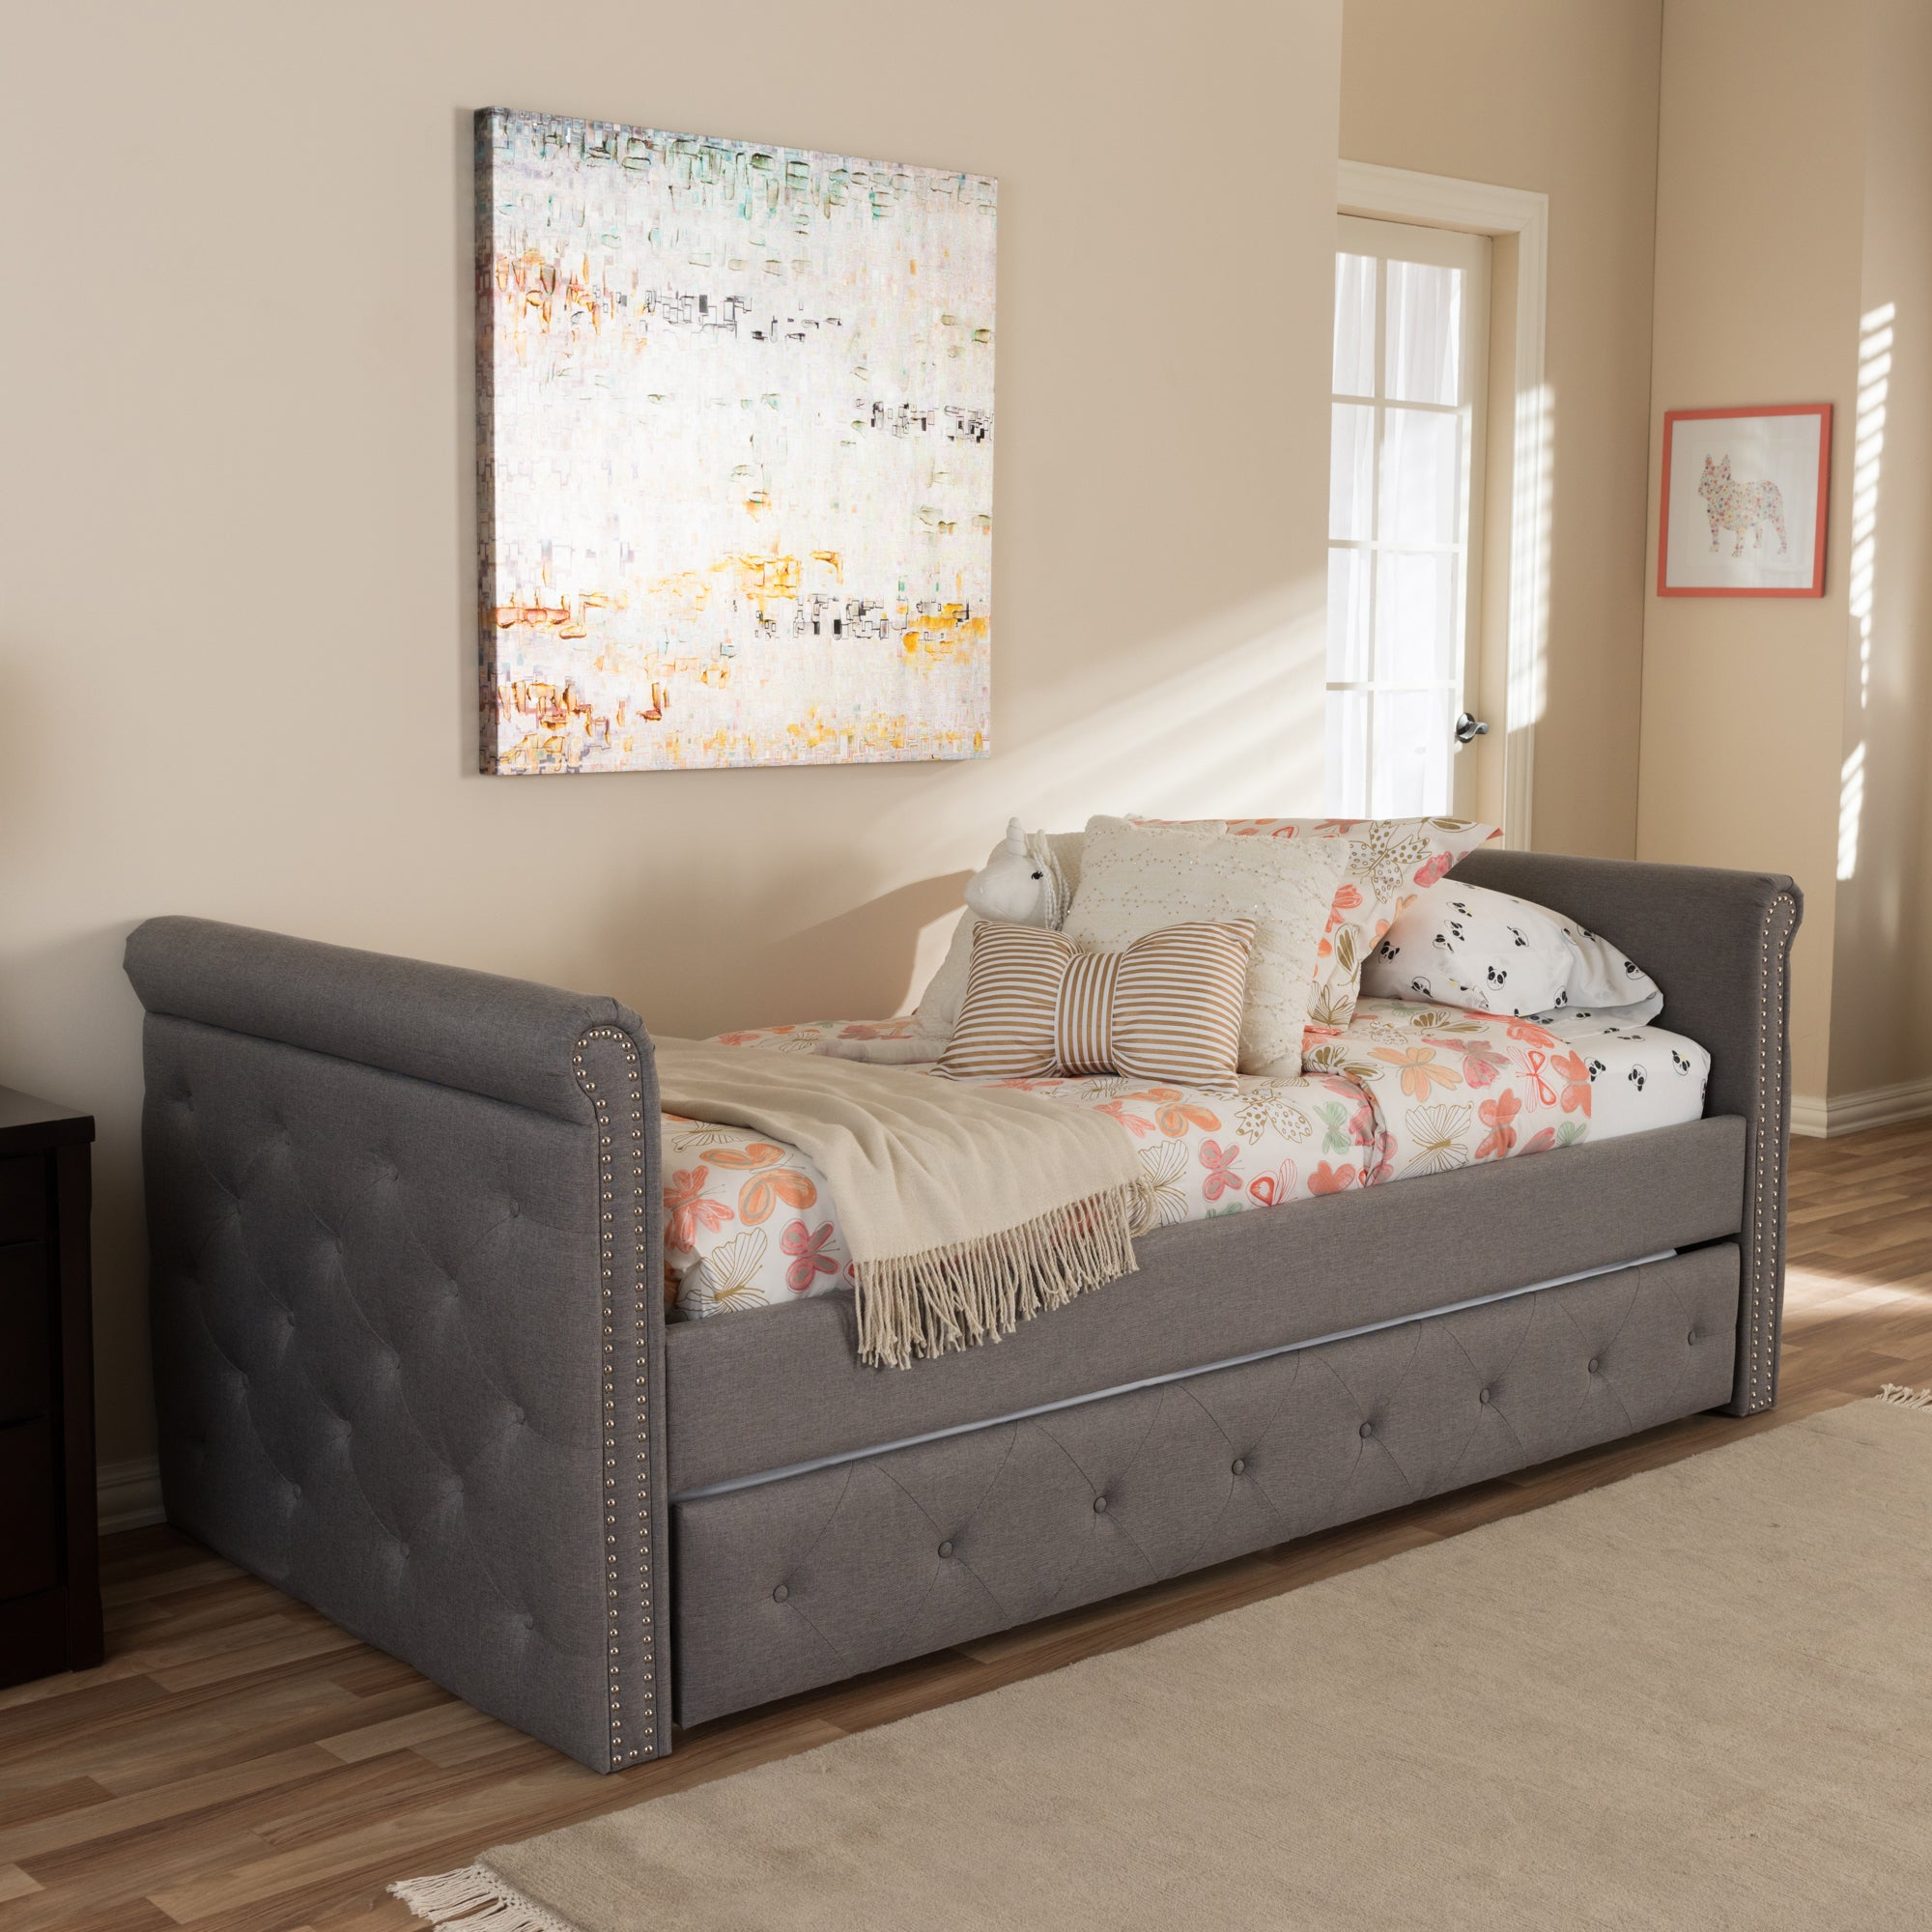 e692dff9b81 Shop Baxton Studio Aisopos Modern and Contemporary Grey Fabric Tufted Twin  Size Daybed with Roll-out Trundle Guest Bed - Free Shipping Today -  Overstock - ...